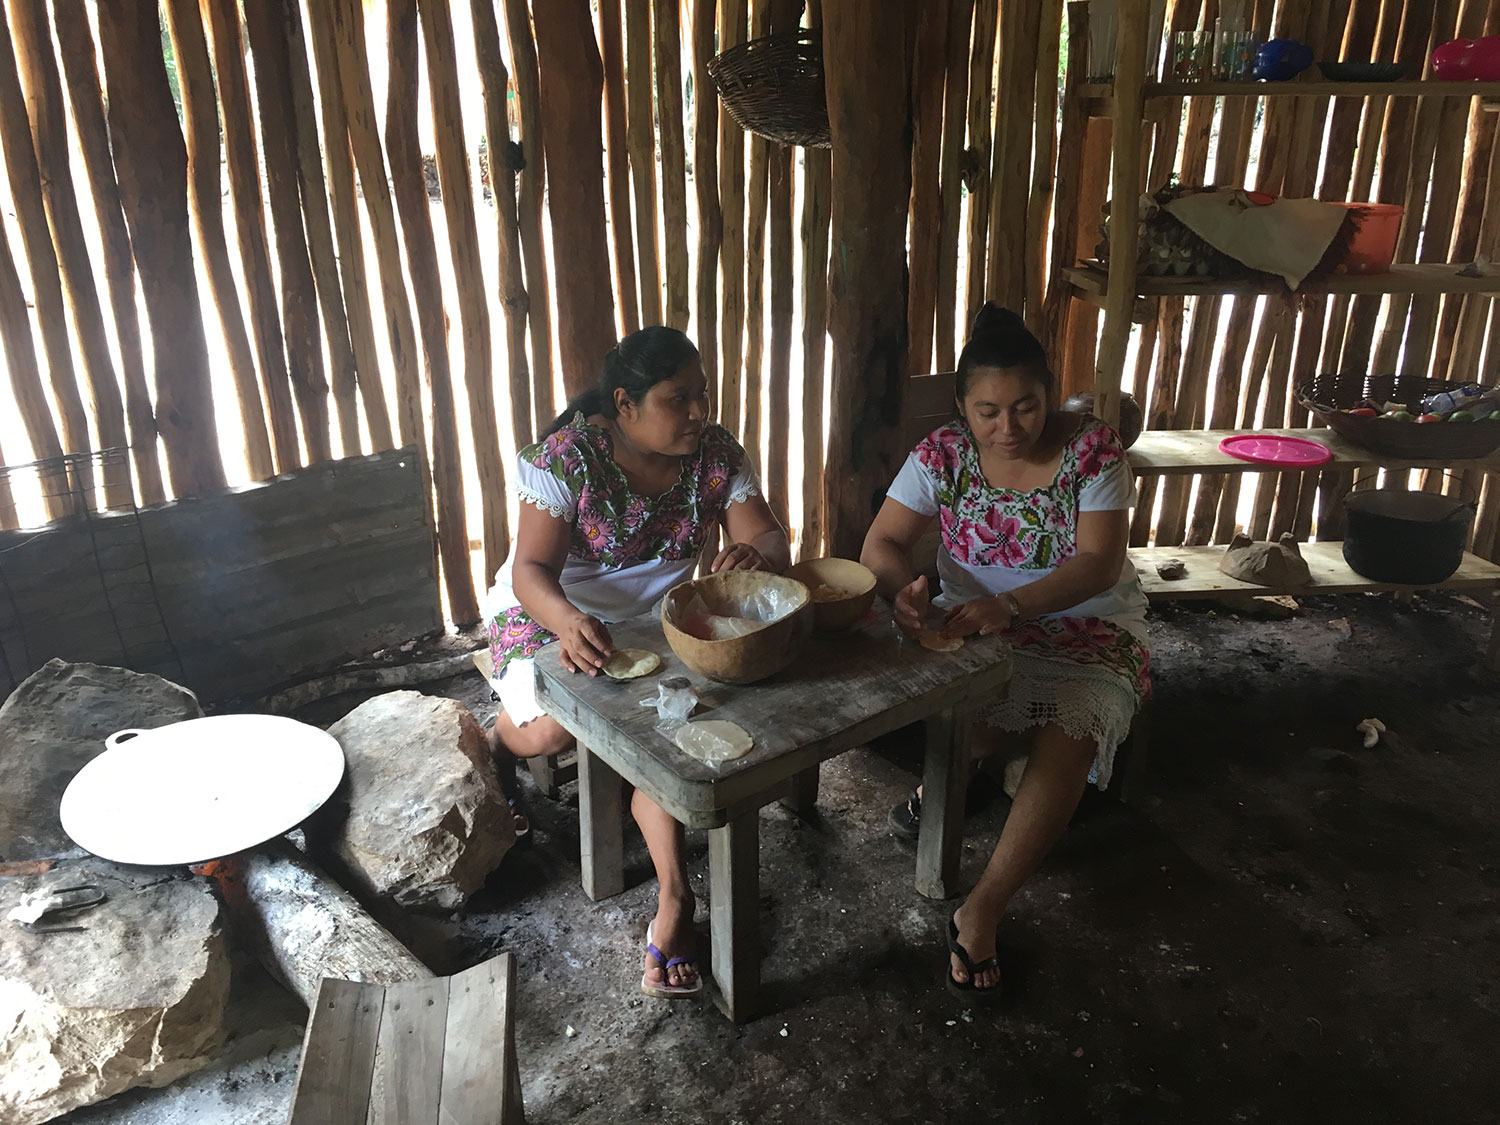 The same kitchen but during different visits. The women wear  huipils .